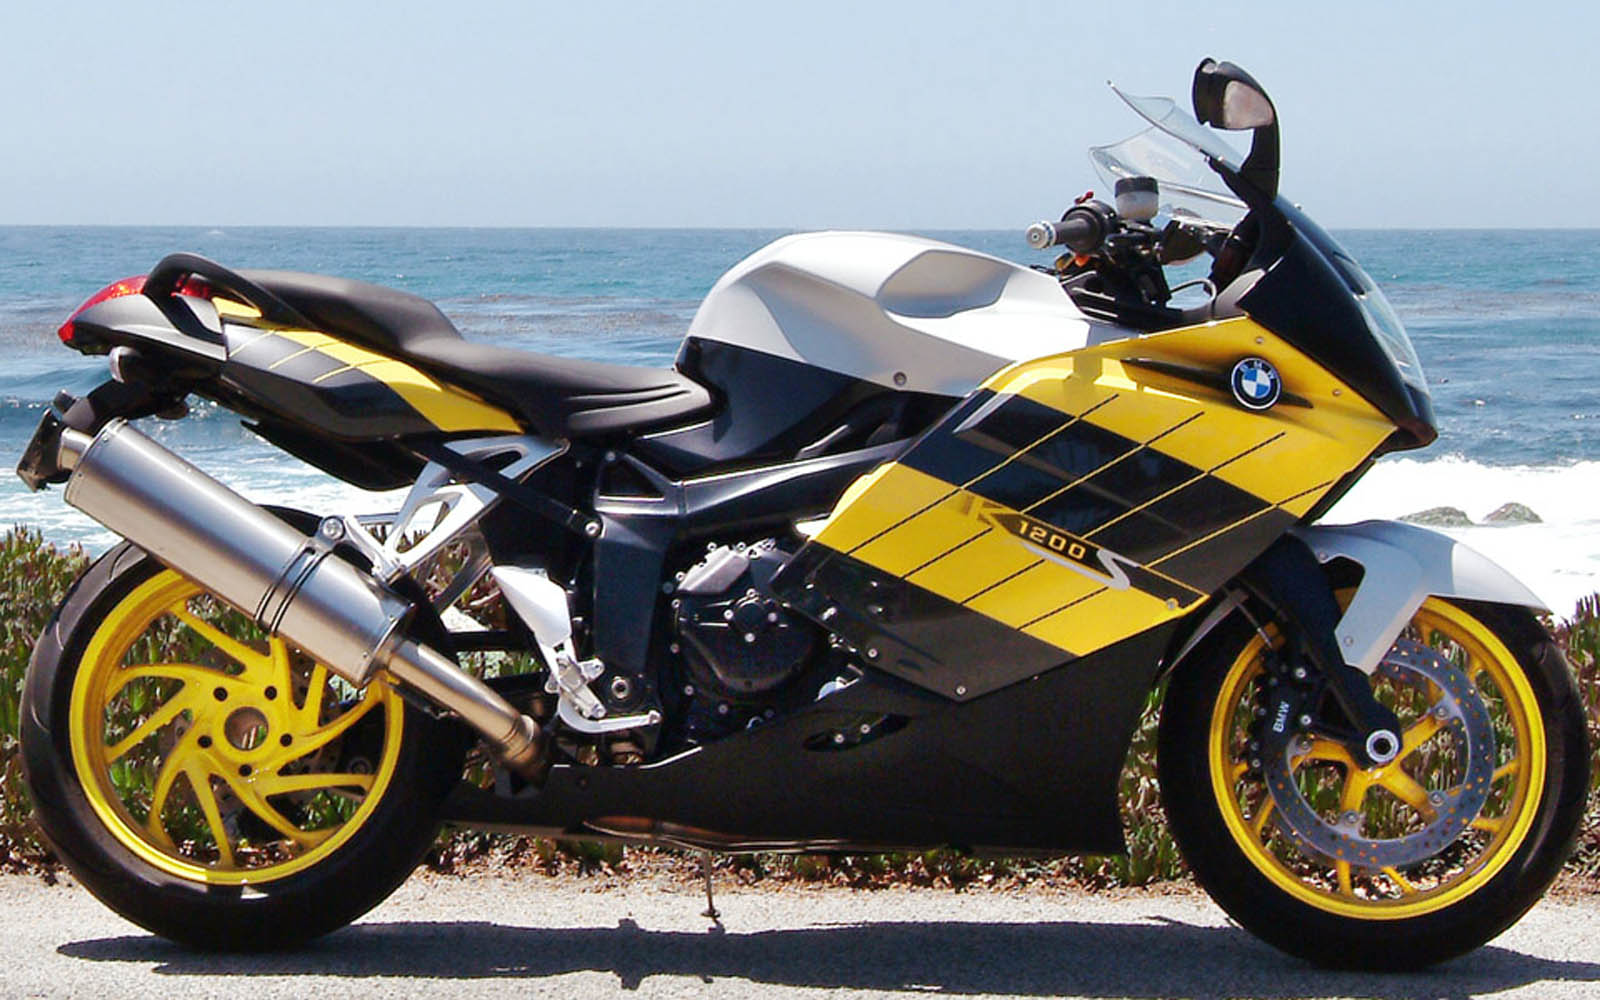 HD Wallpapers: BMW K1200S Wallpapers